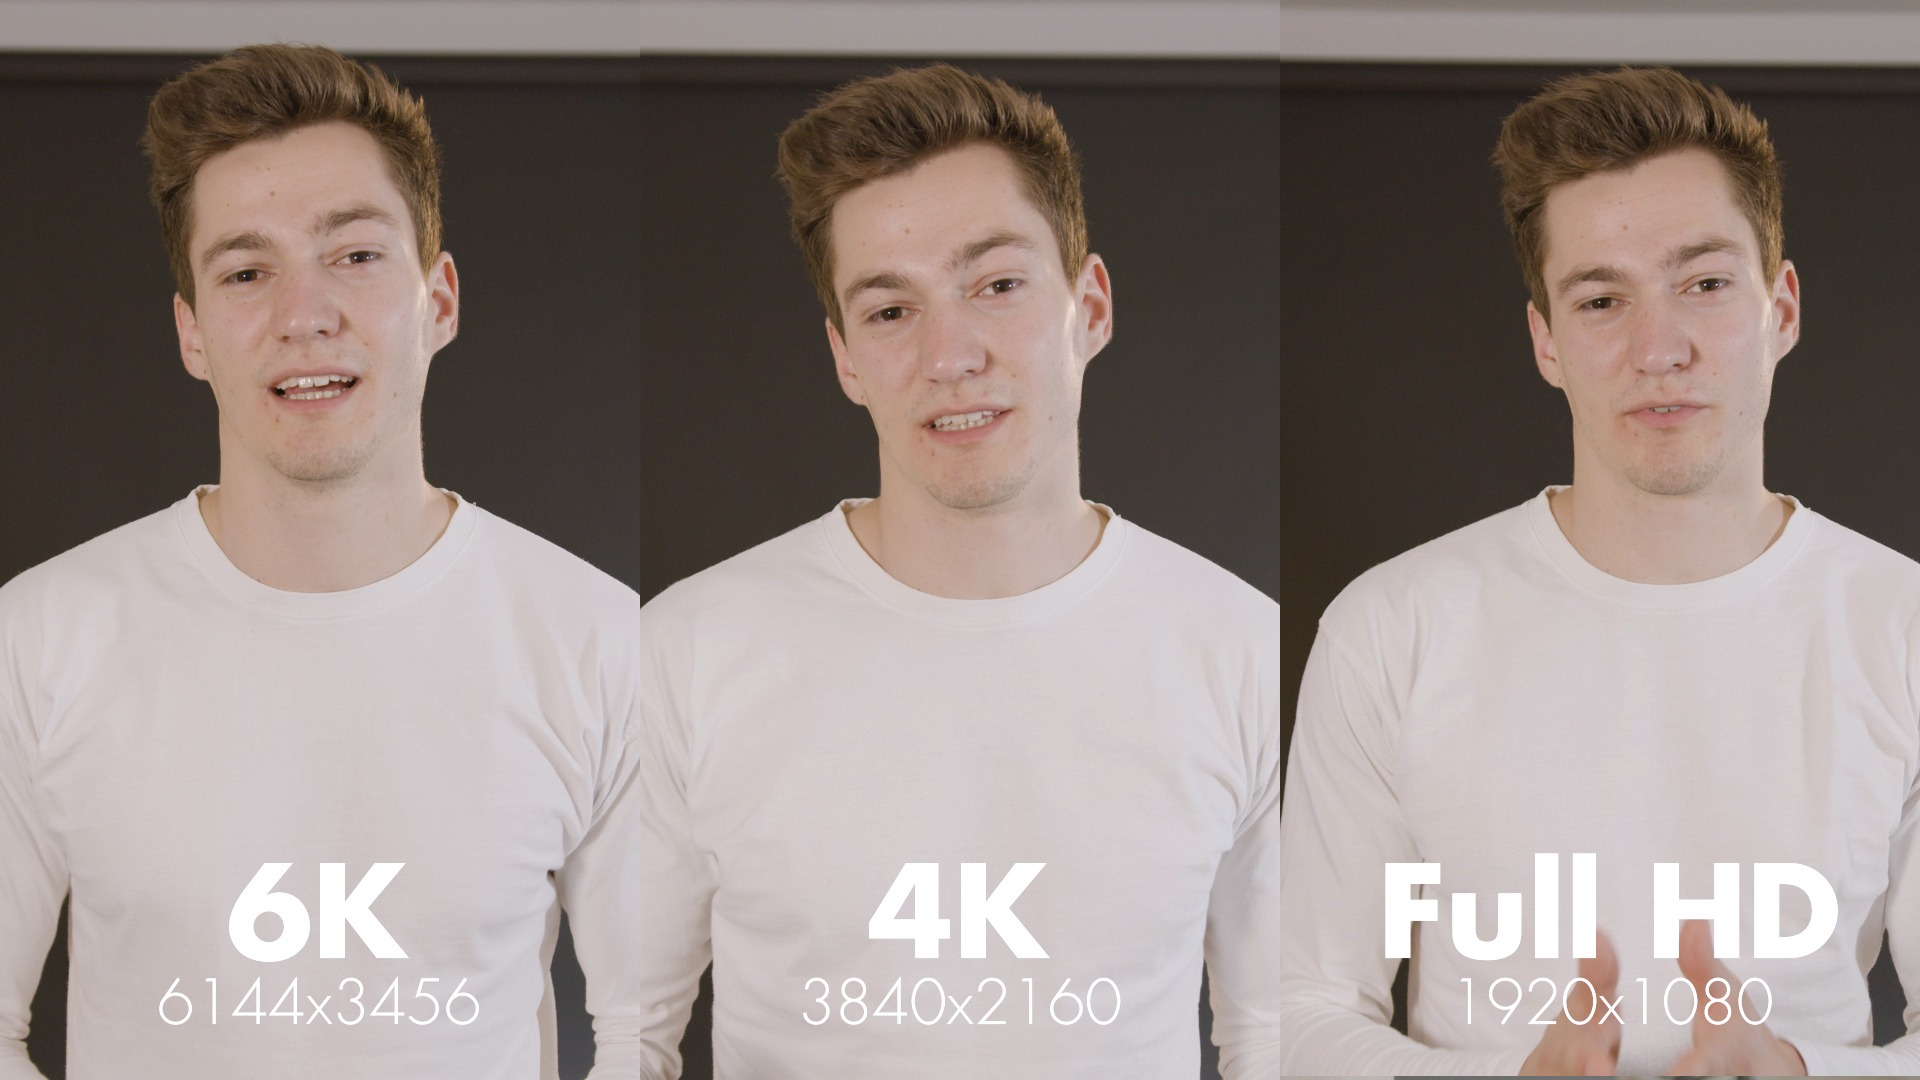 Comparison Video 6K 4K Full HD